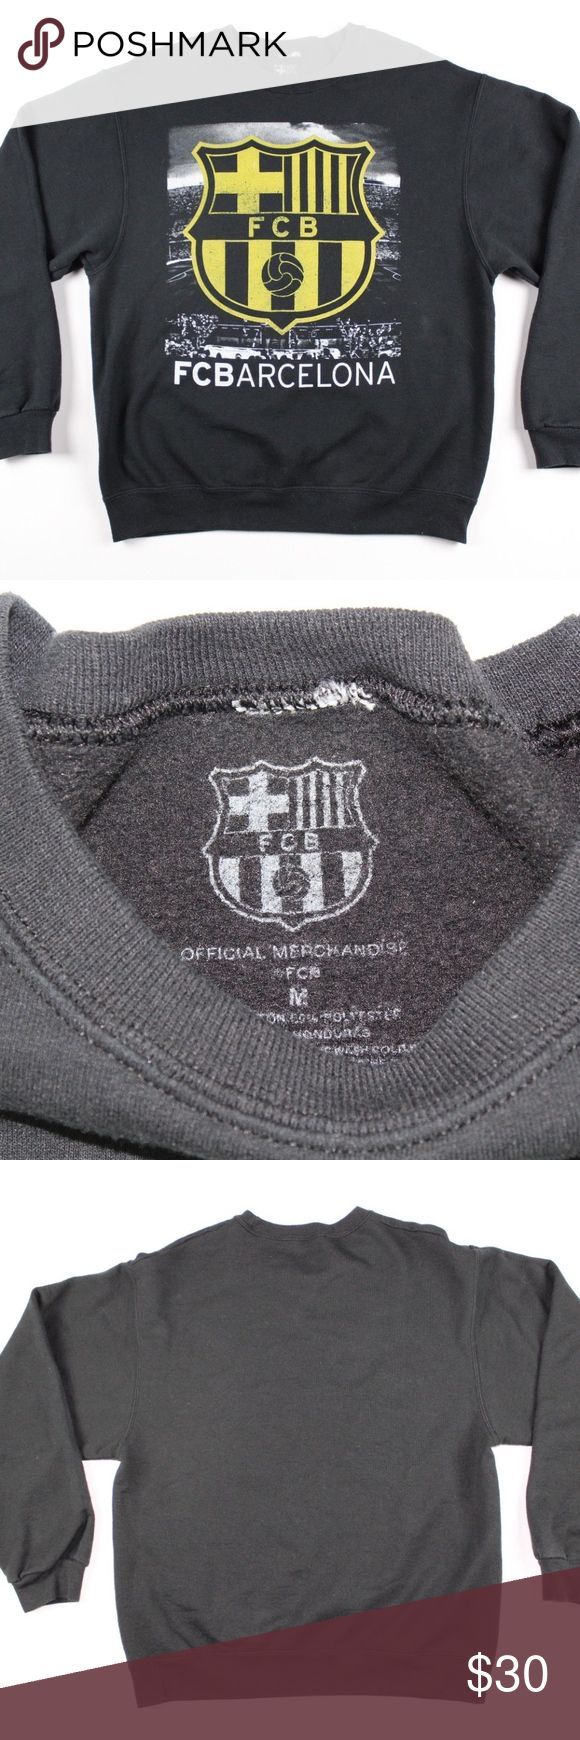 FC Barcelona Medium Soccer Futbol Crewneck Sweater FCB Official Merch FC Barcelona Soccer Futbol Crewneck Sweater  Excellent sweater  Comes from a smoke-free household  Black  The size is Medium and the measurements are 21.5 inches pit to pit and 26.5 inches shoulder to base  50% Cotton 50% Polyester  Thanks for looking, please do not hesitate to contact me   Check out my other items for sale in my store!  G27 FC Barcelona Sweaters Crewneck